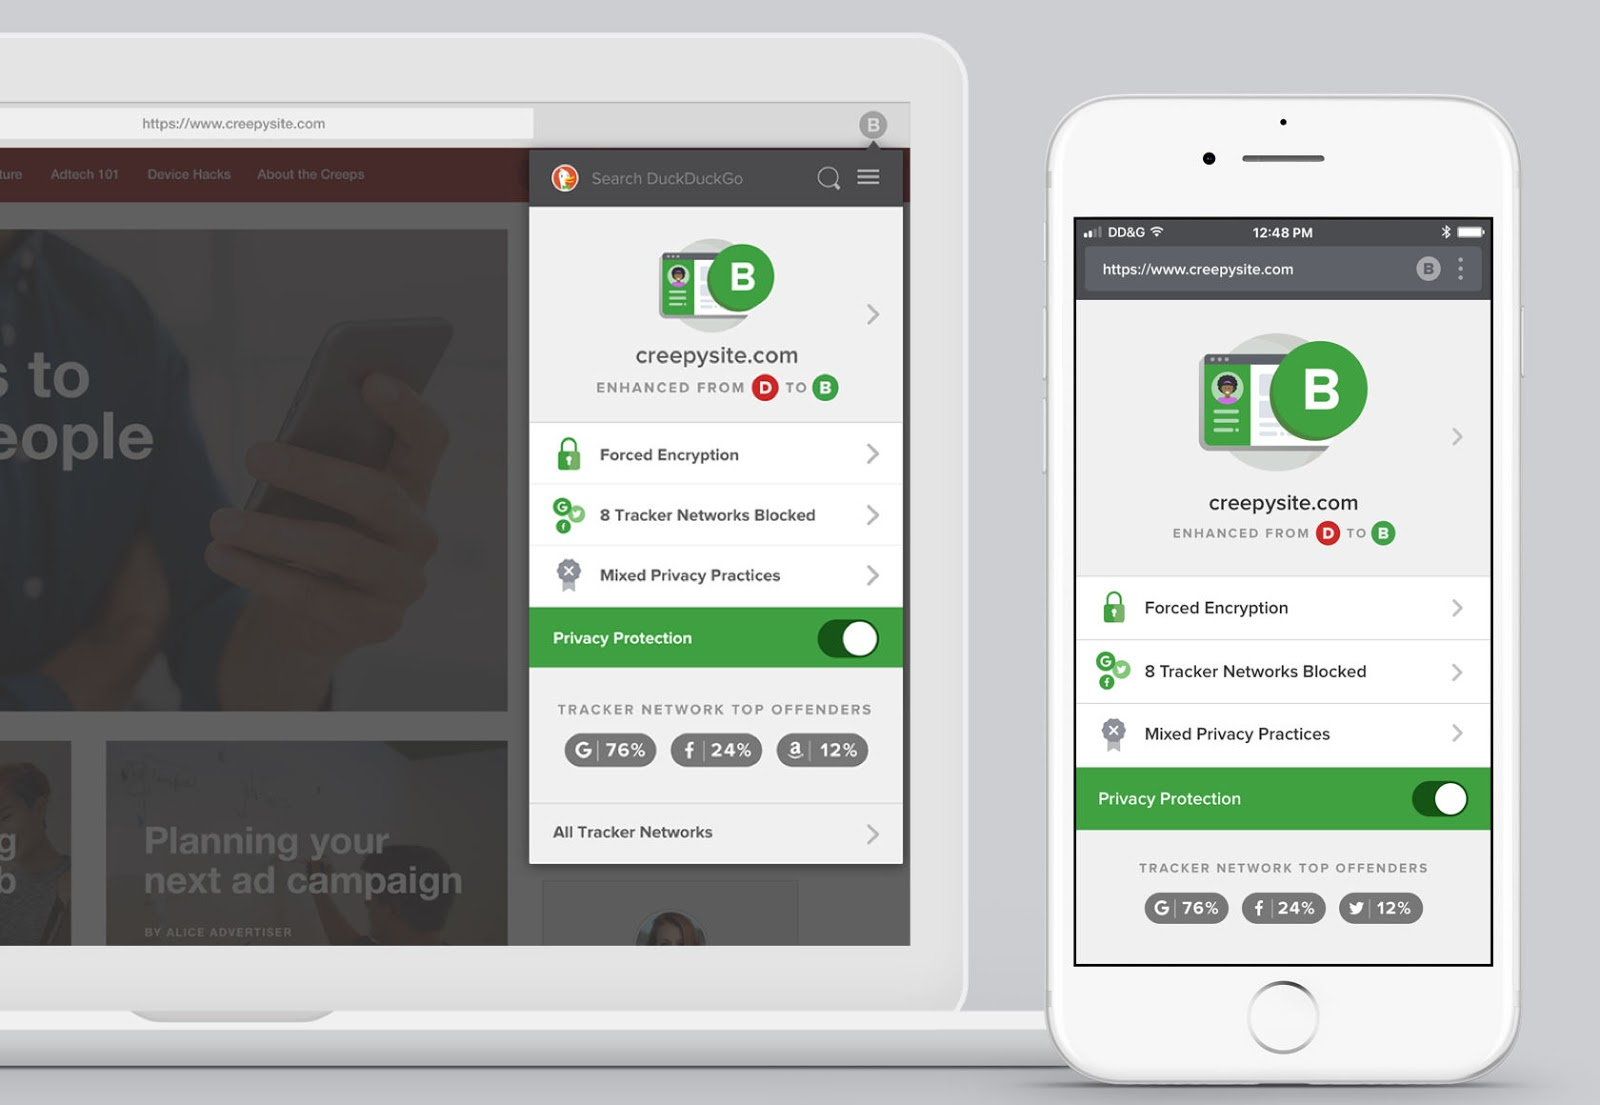 Tech News 24h: DuckDuckGo launches revamped mobile apps and